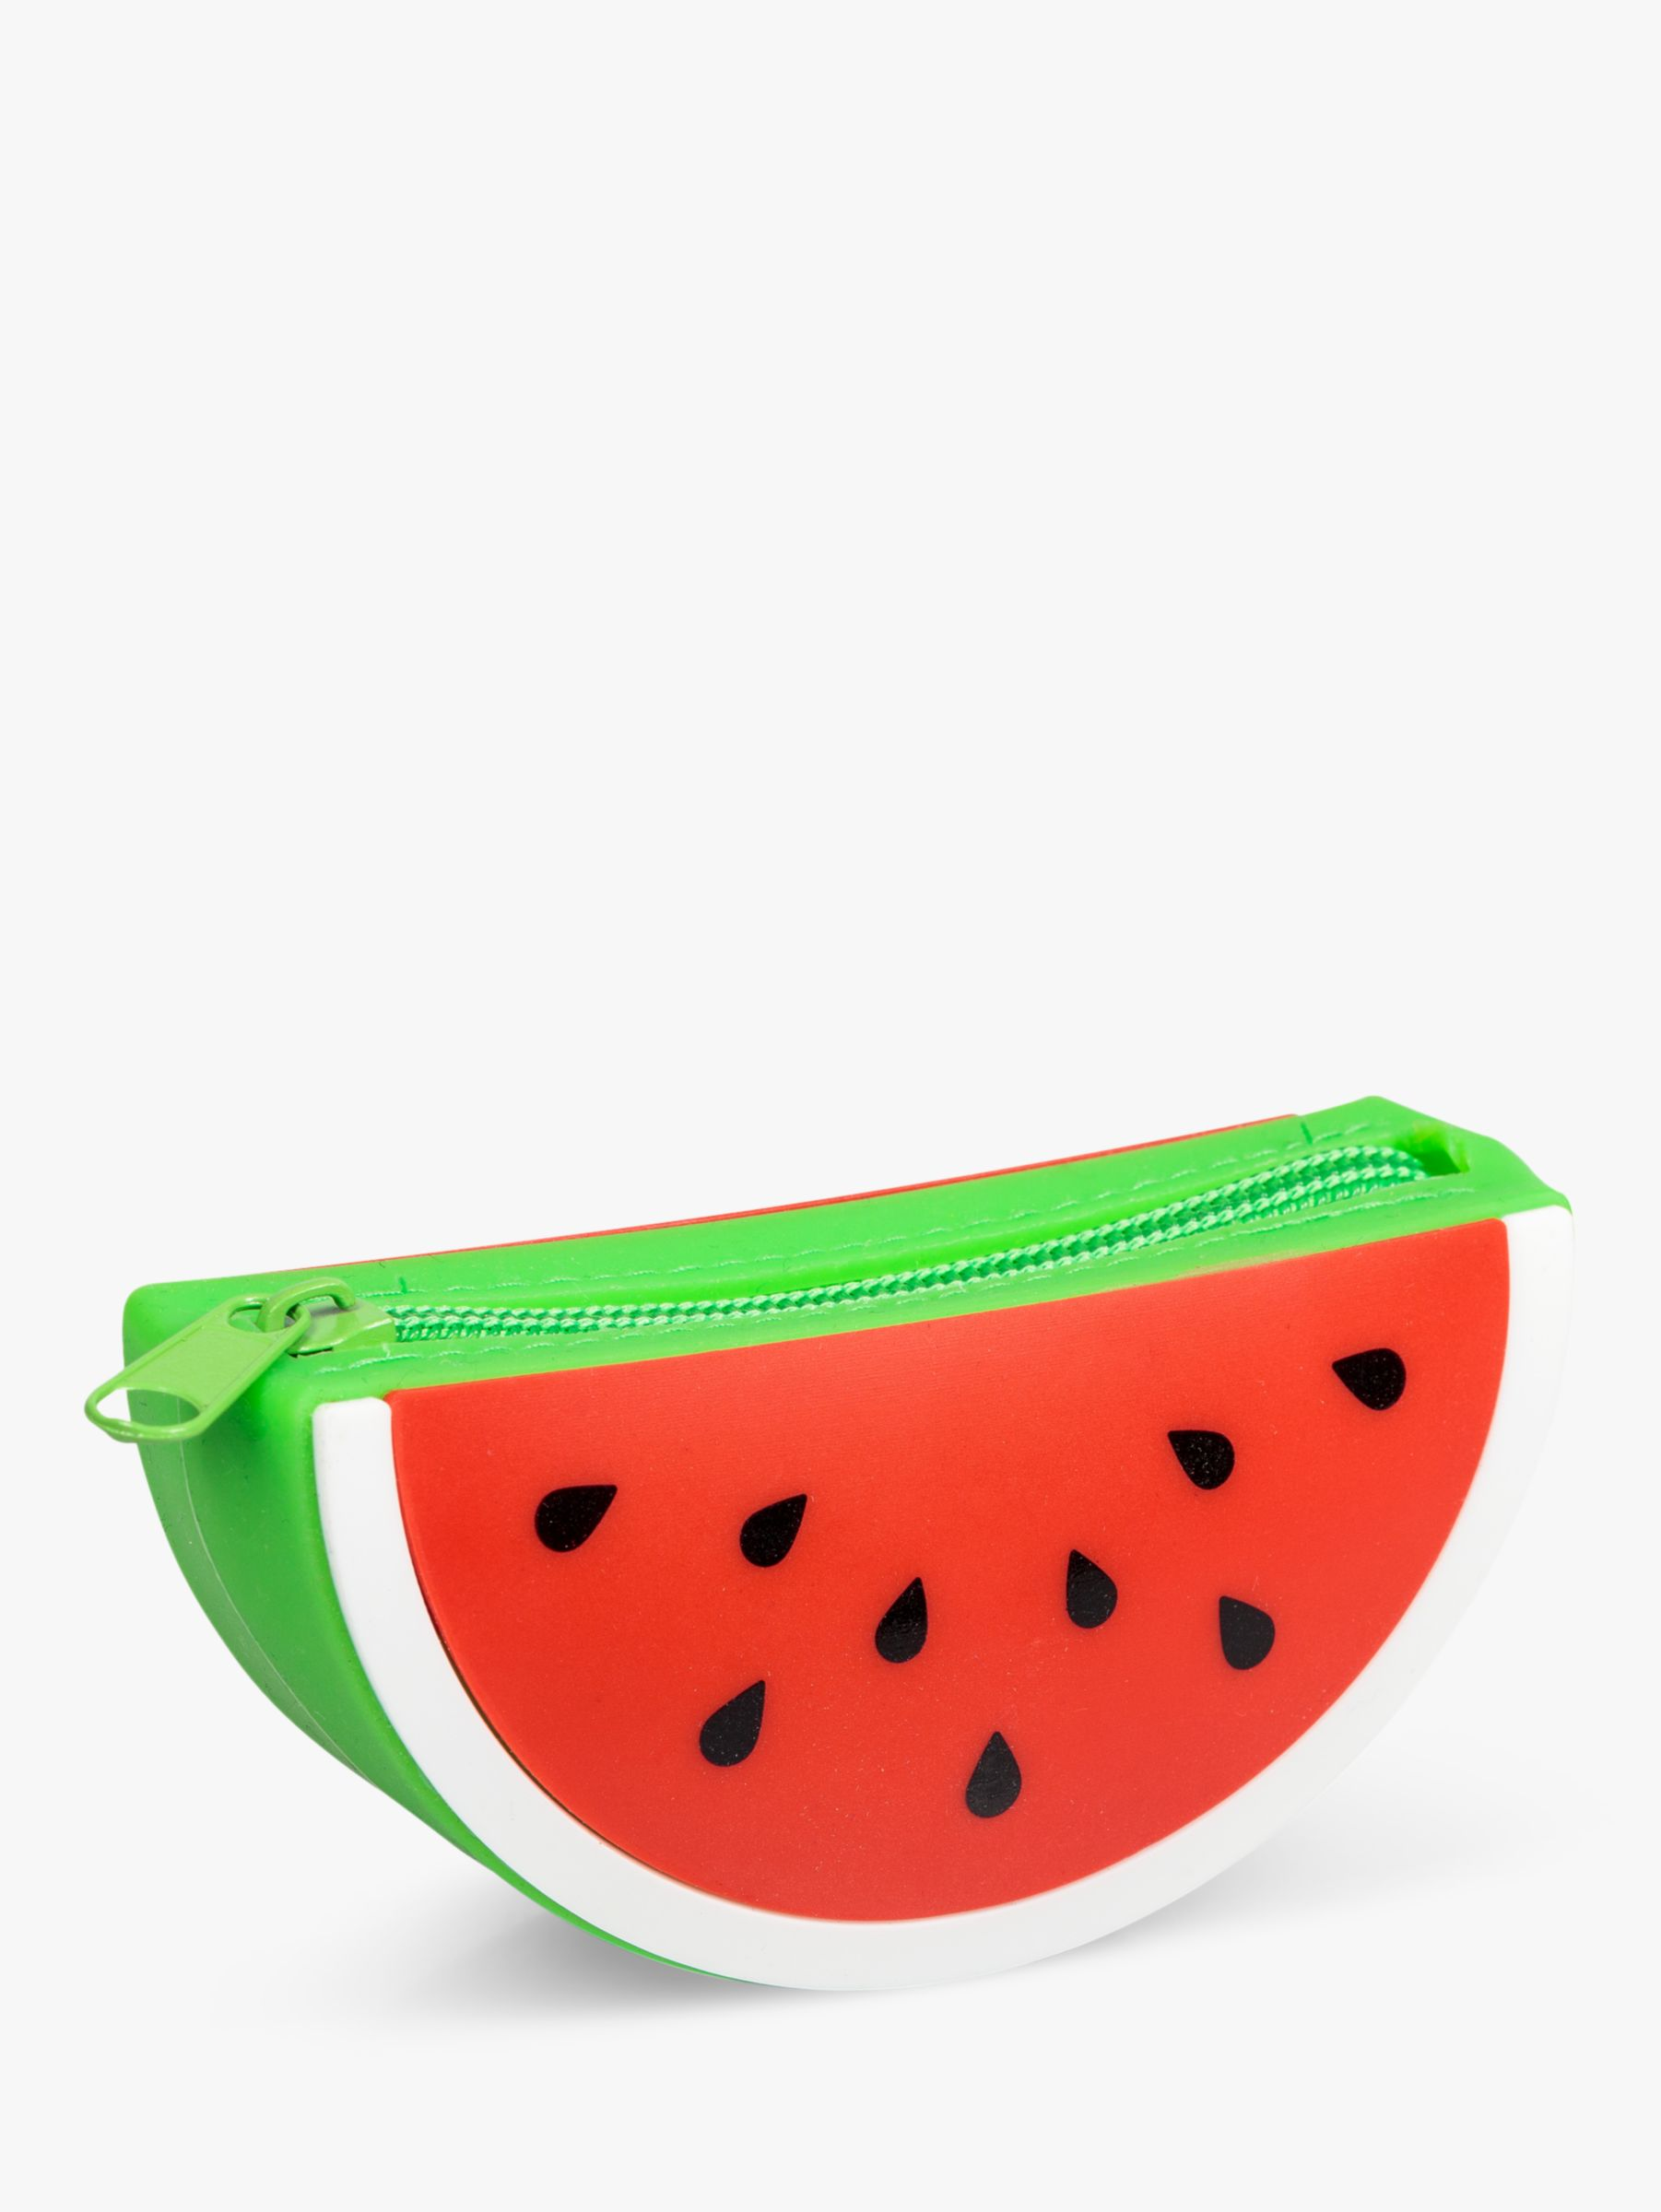 Tobar Tobar Watermelon Purse